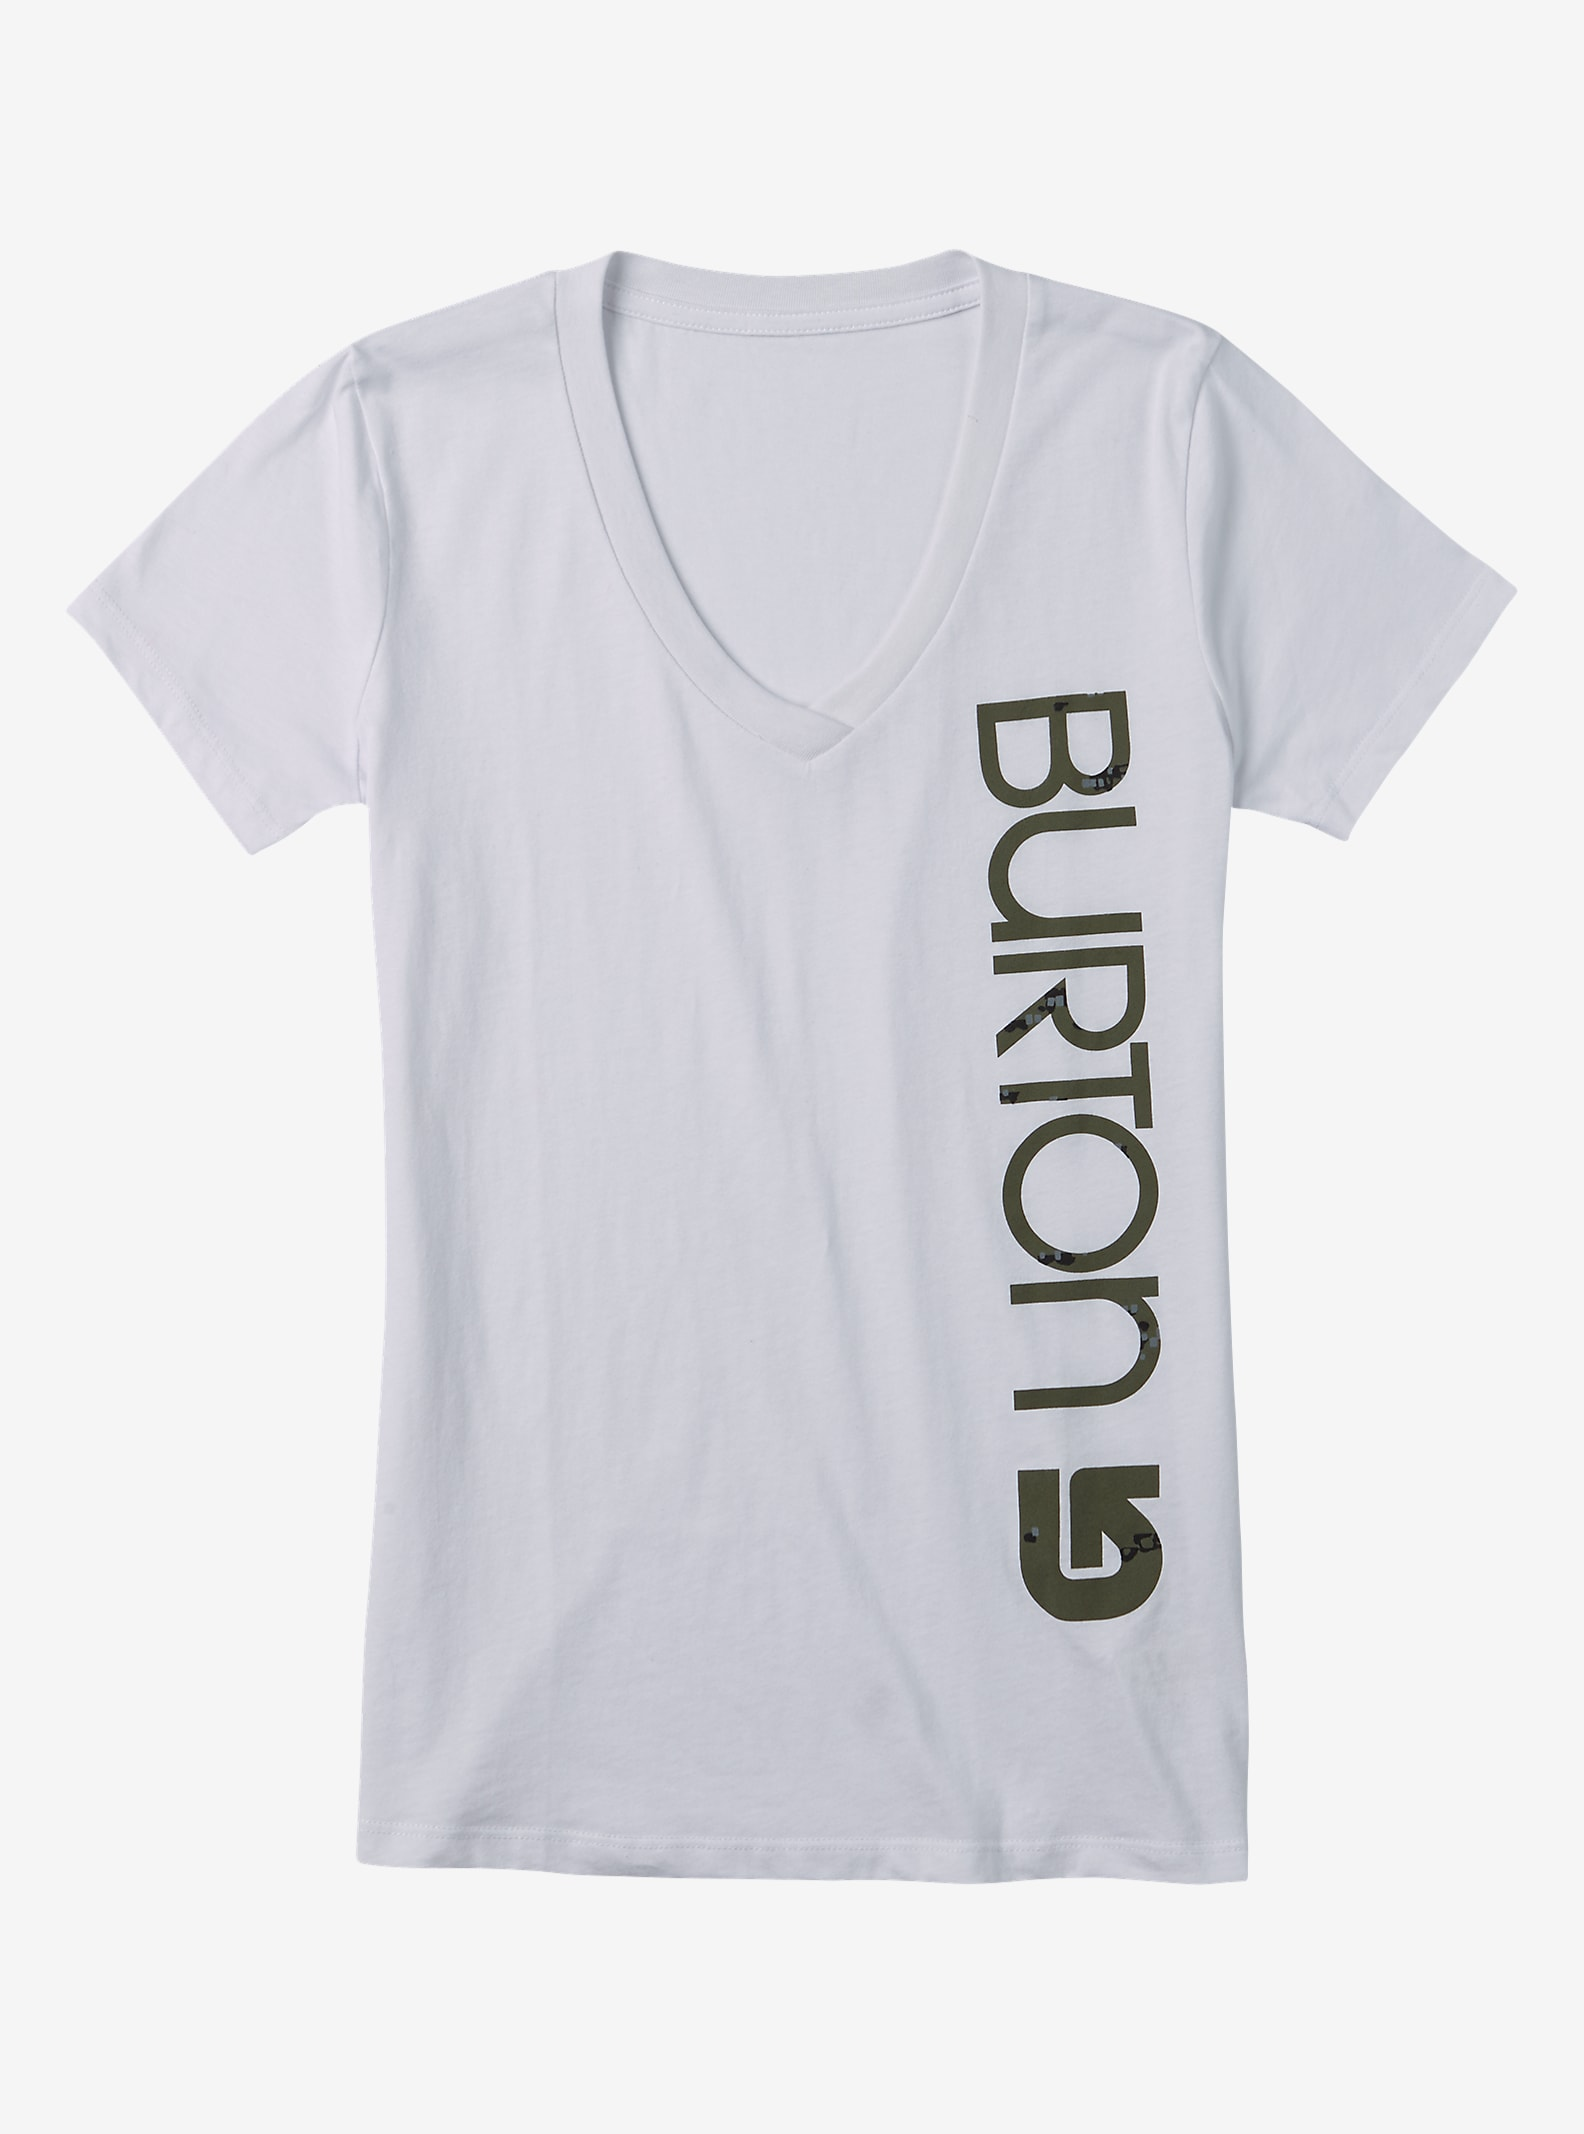 Burton Antidote Short Sleeve T Shirt shown in Stout White